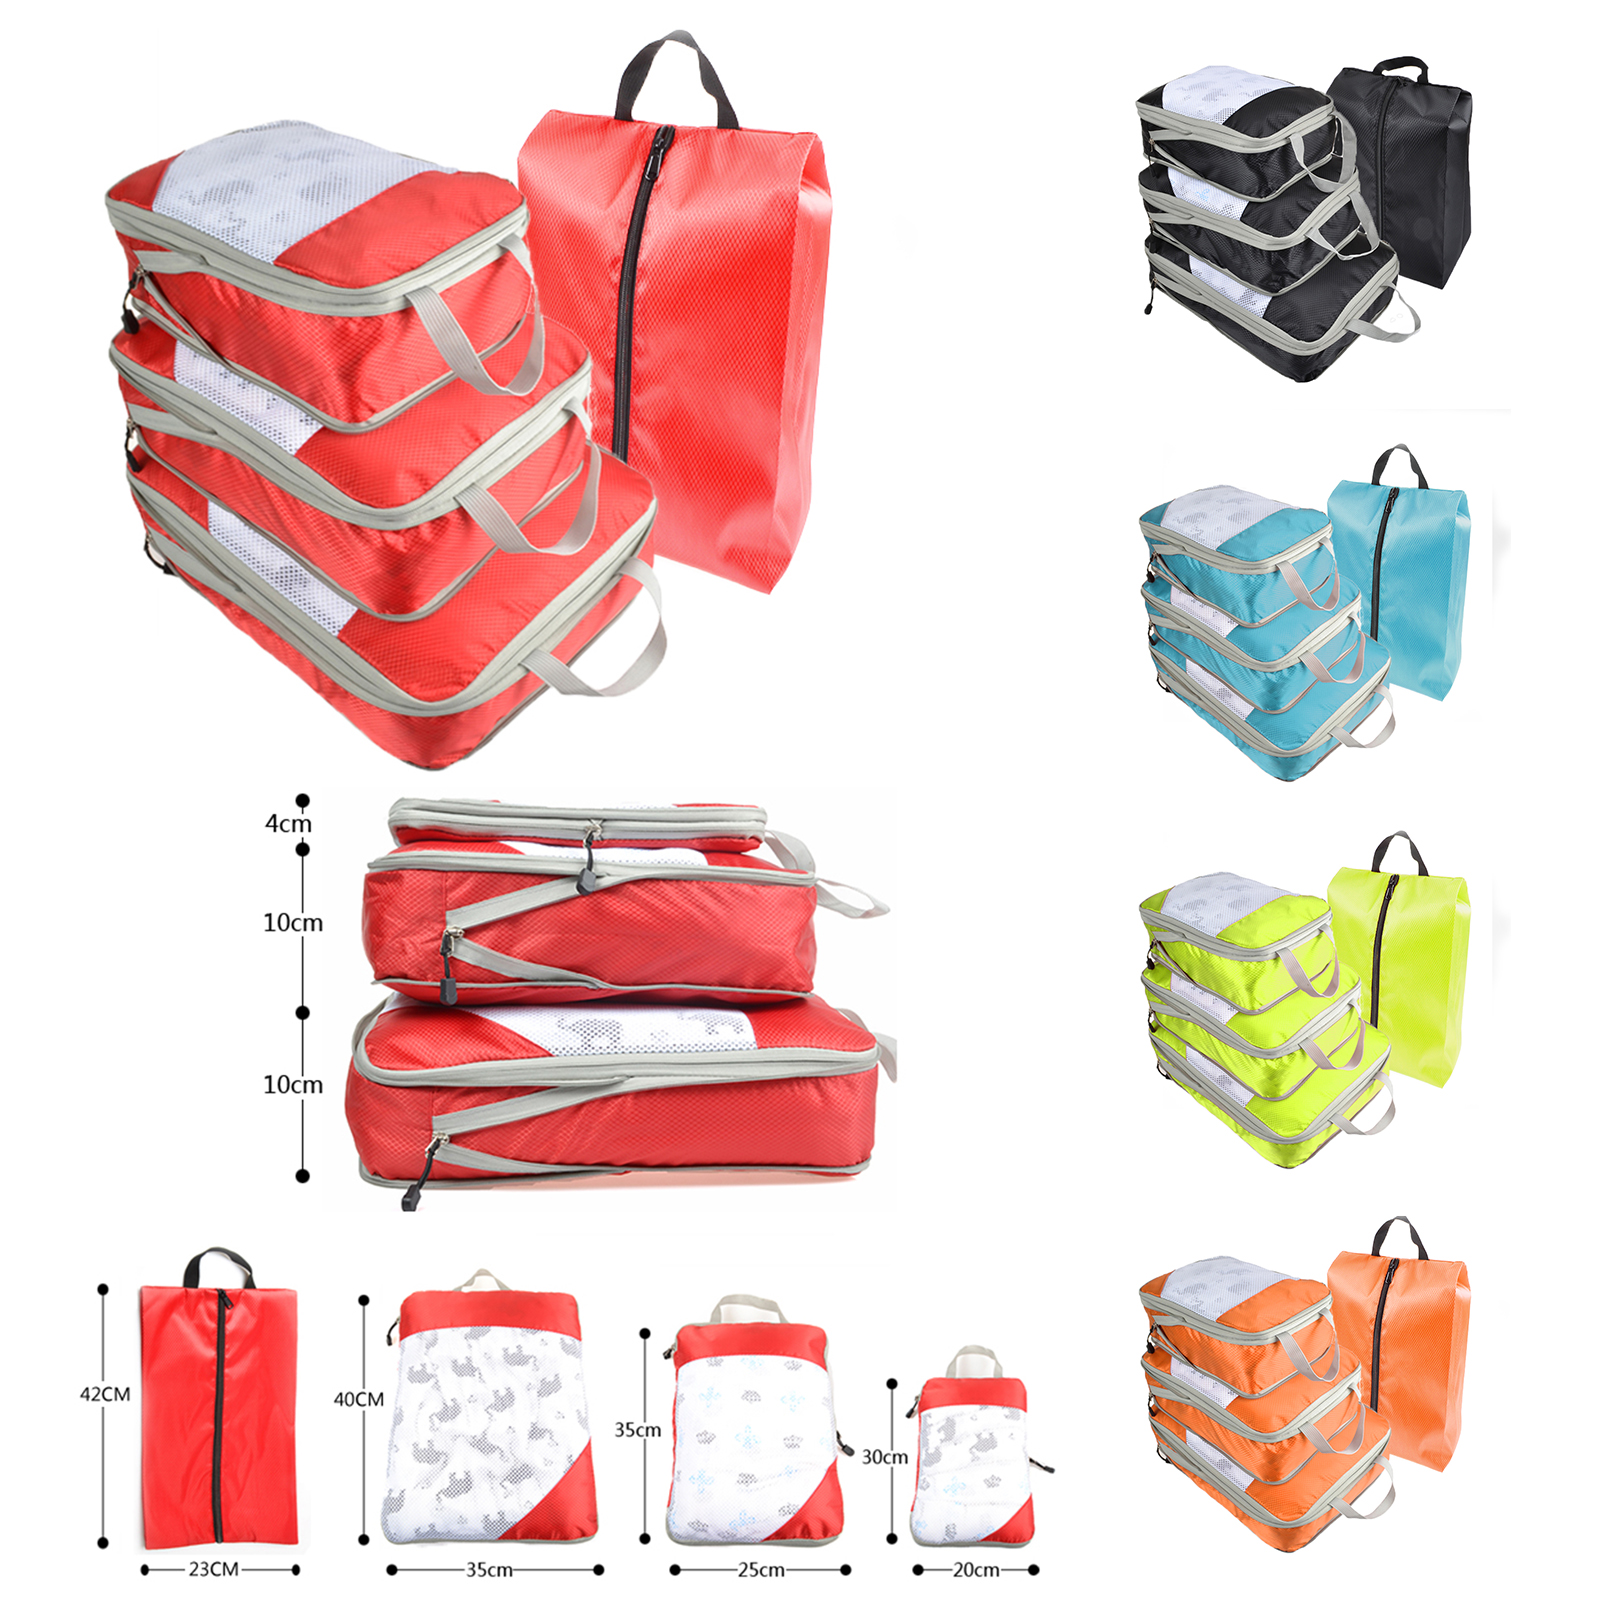 Compression Packing Cubes Travel Luggage Organizer Kids/Foldable/Small/Luxury/Large/Folding Travel Bag Organizer/Men/Women/Set